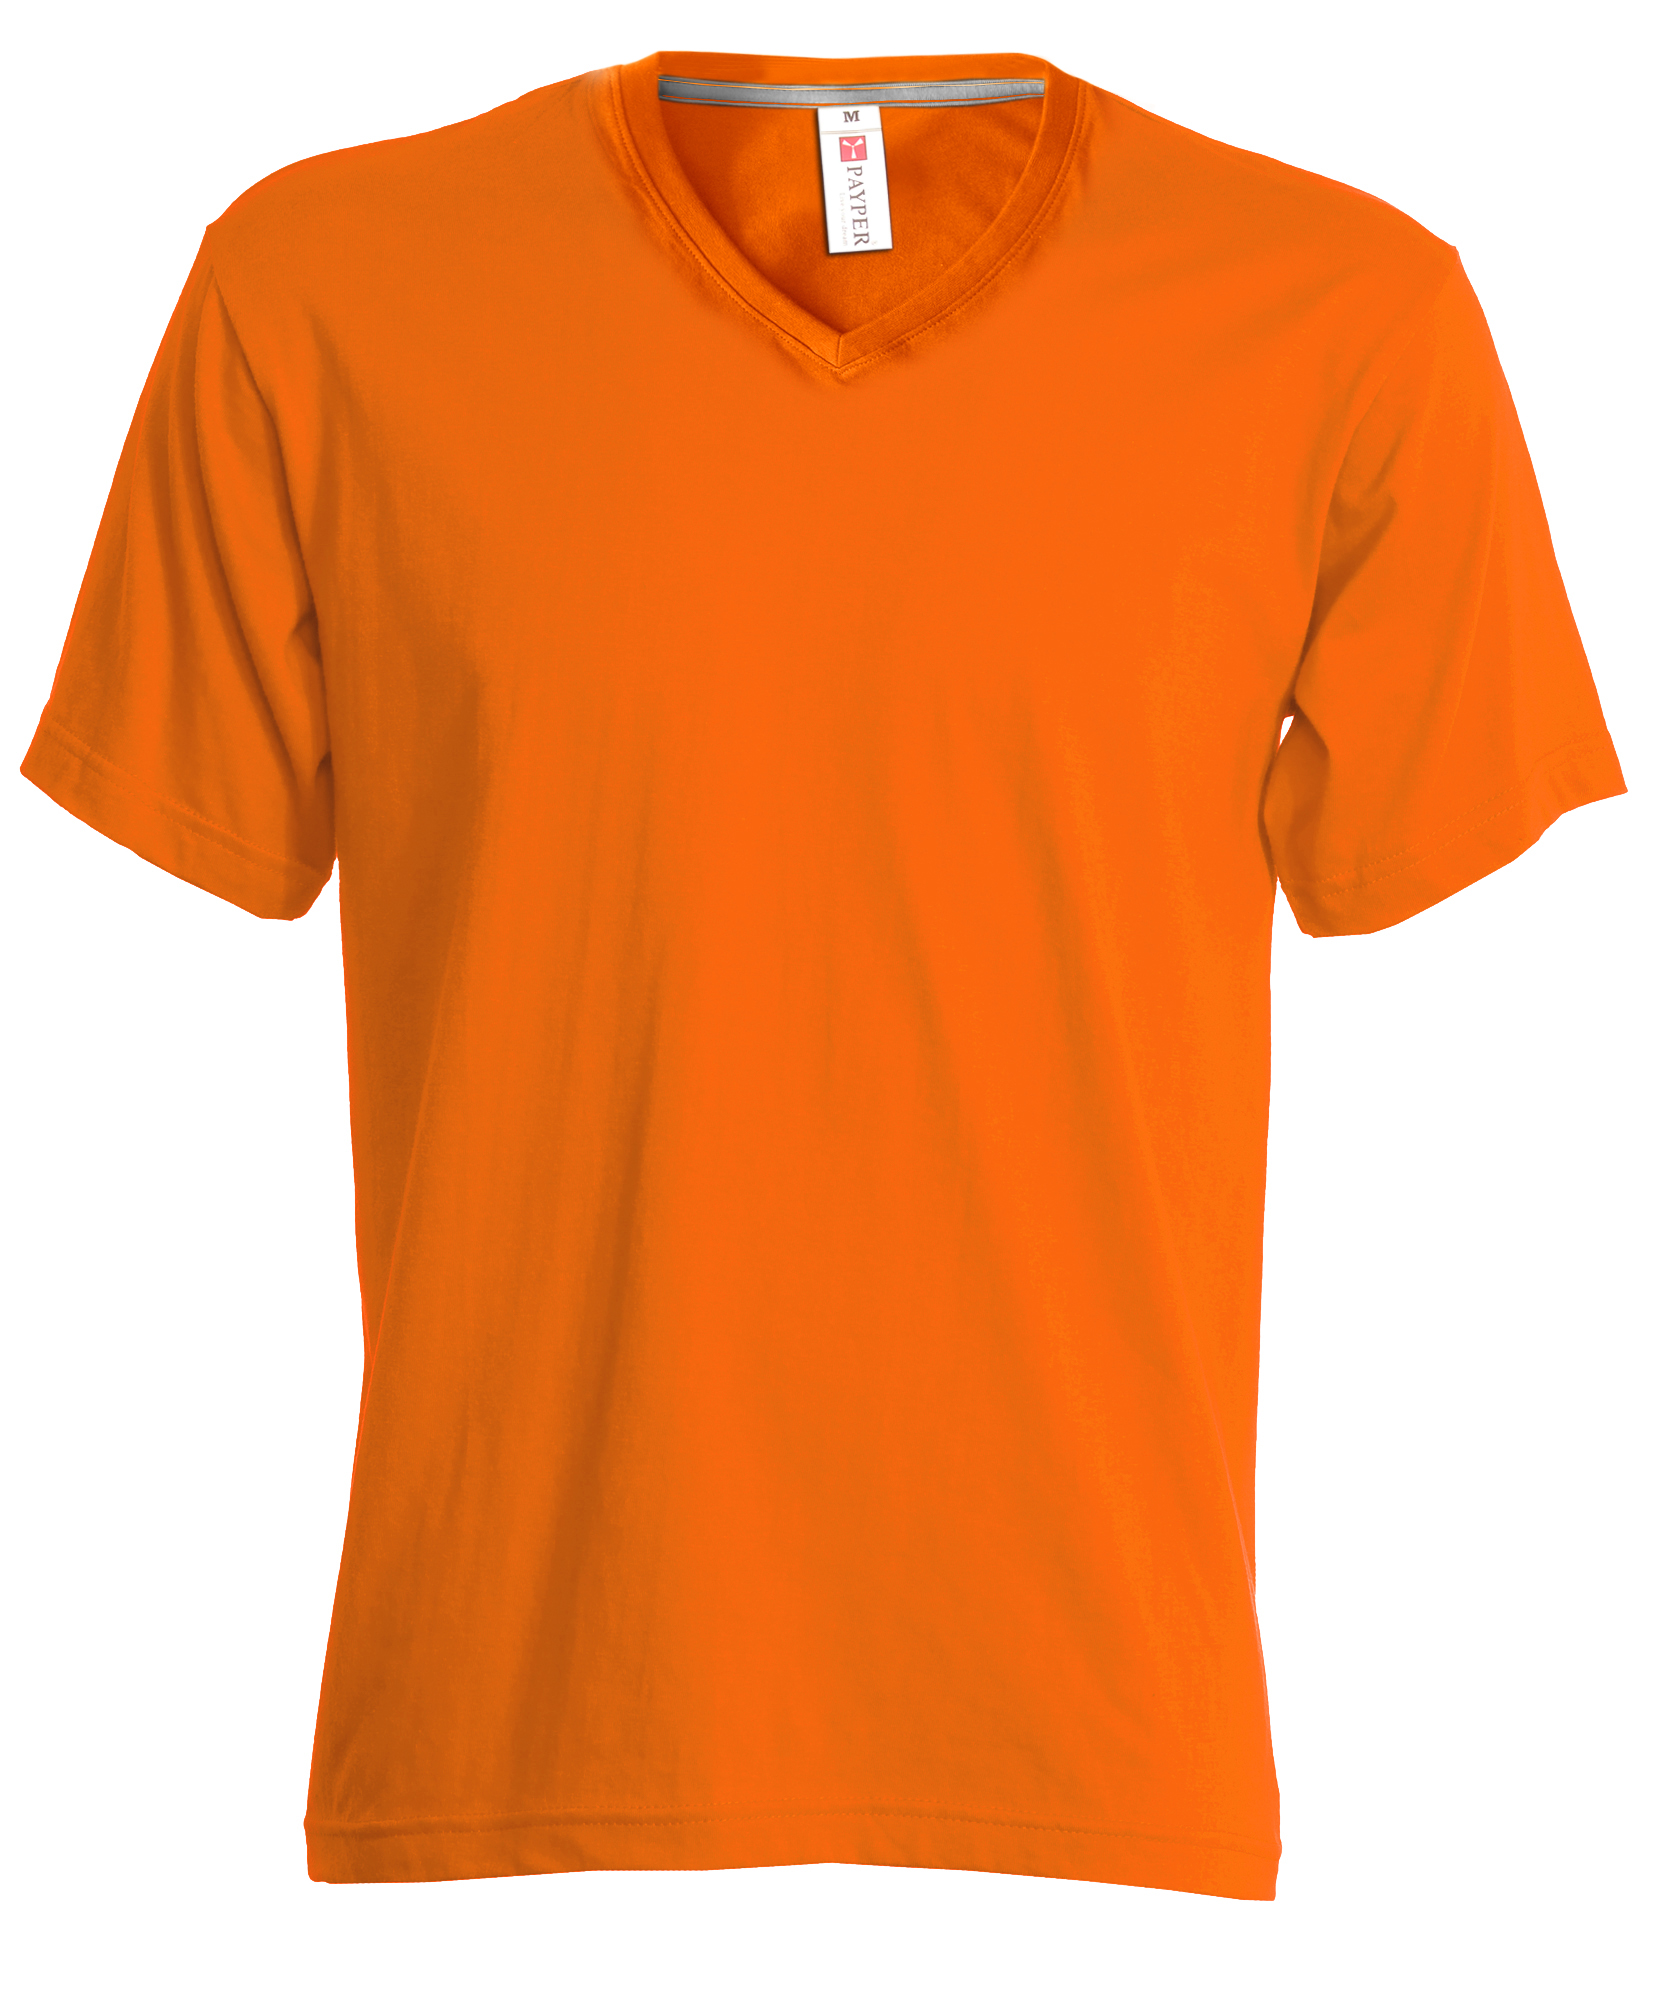 Tshirt Deluxe V NECK ORANGE